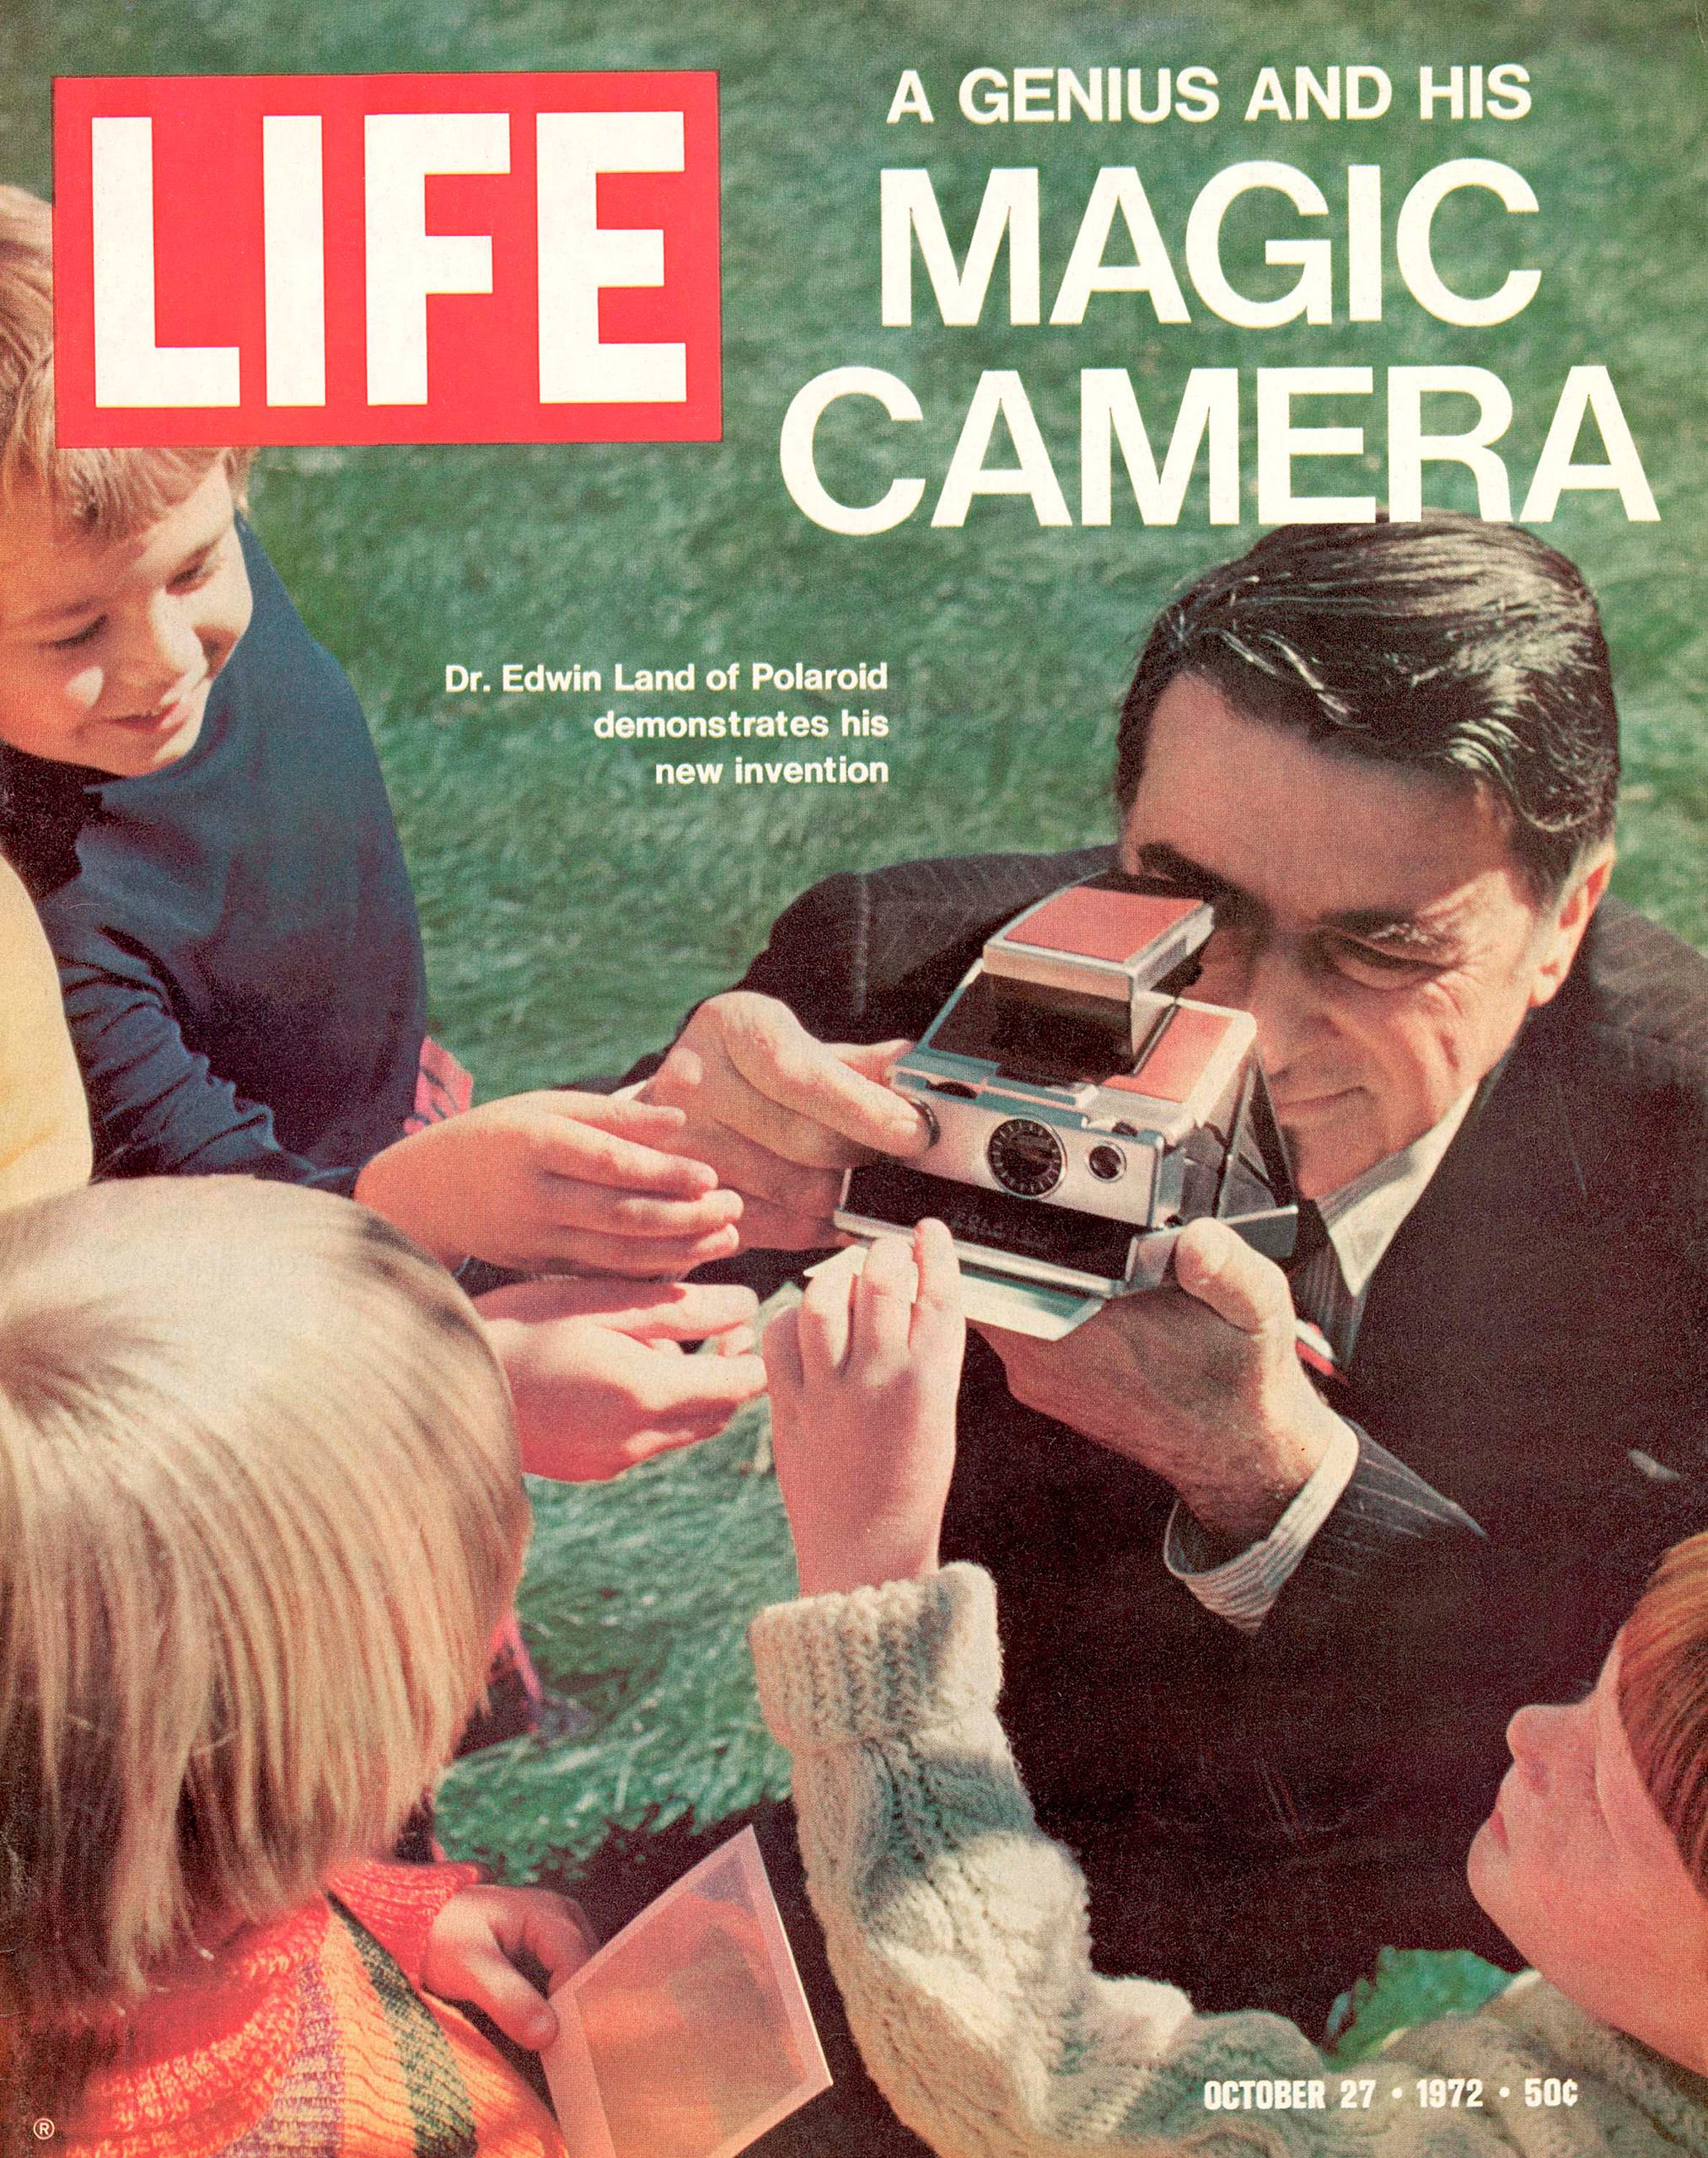 Edwin Land of Polaroid on the cover of LIFE magazine, October 27, 1972.October 27, 1972 cover of LIFE magazine.